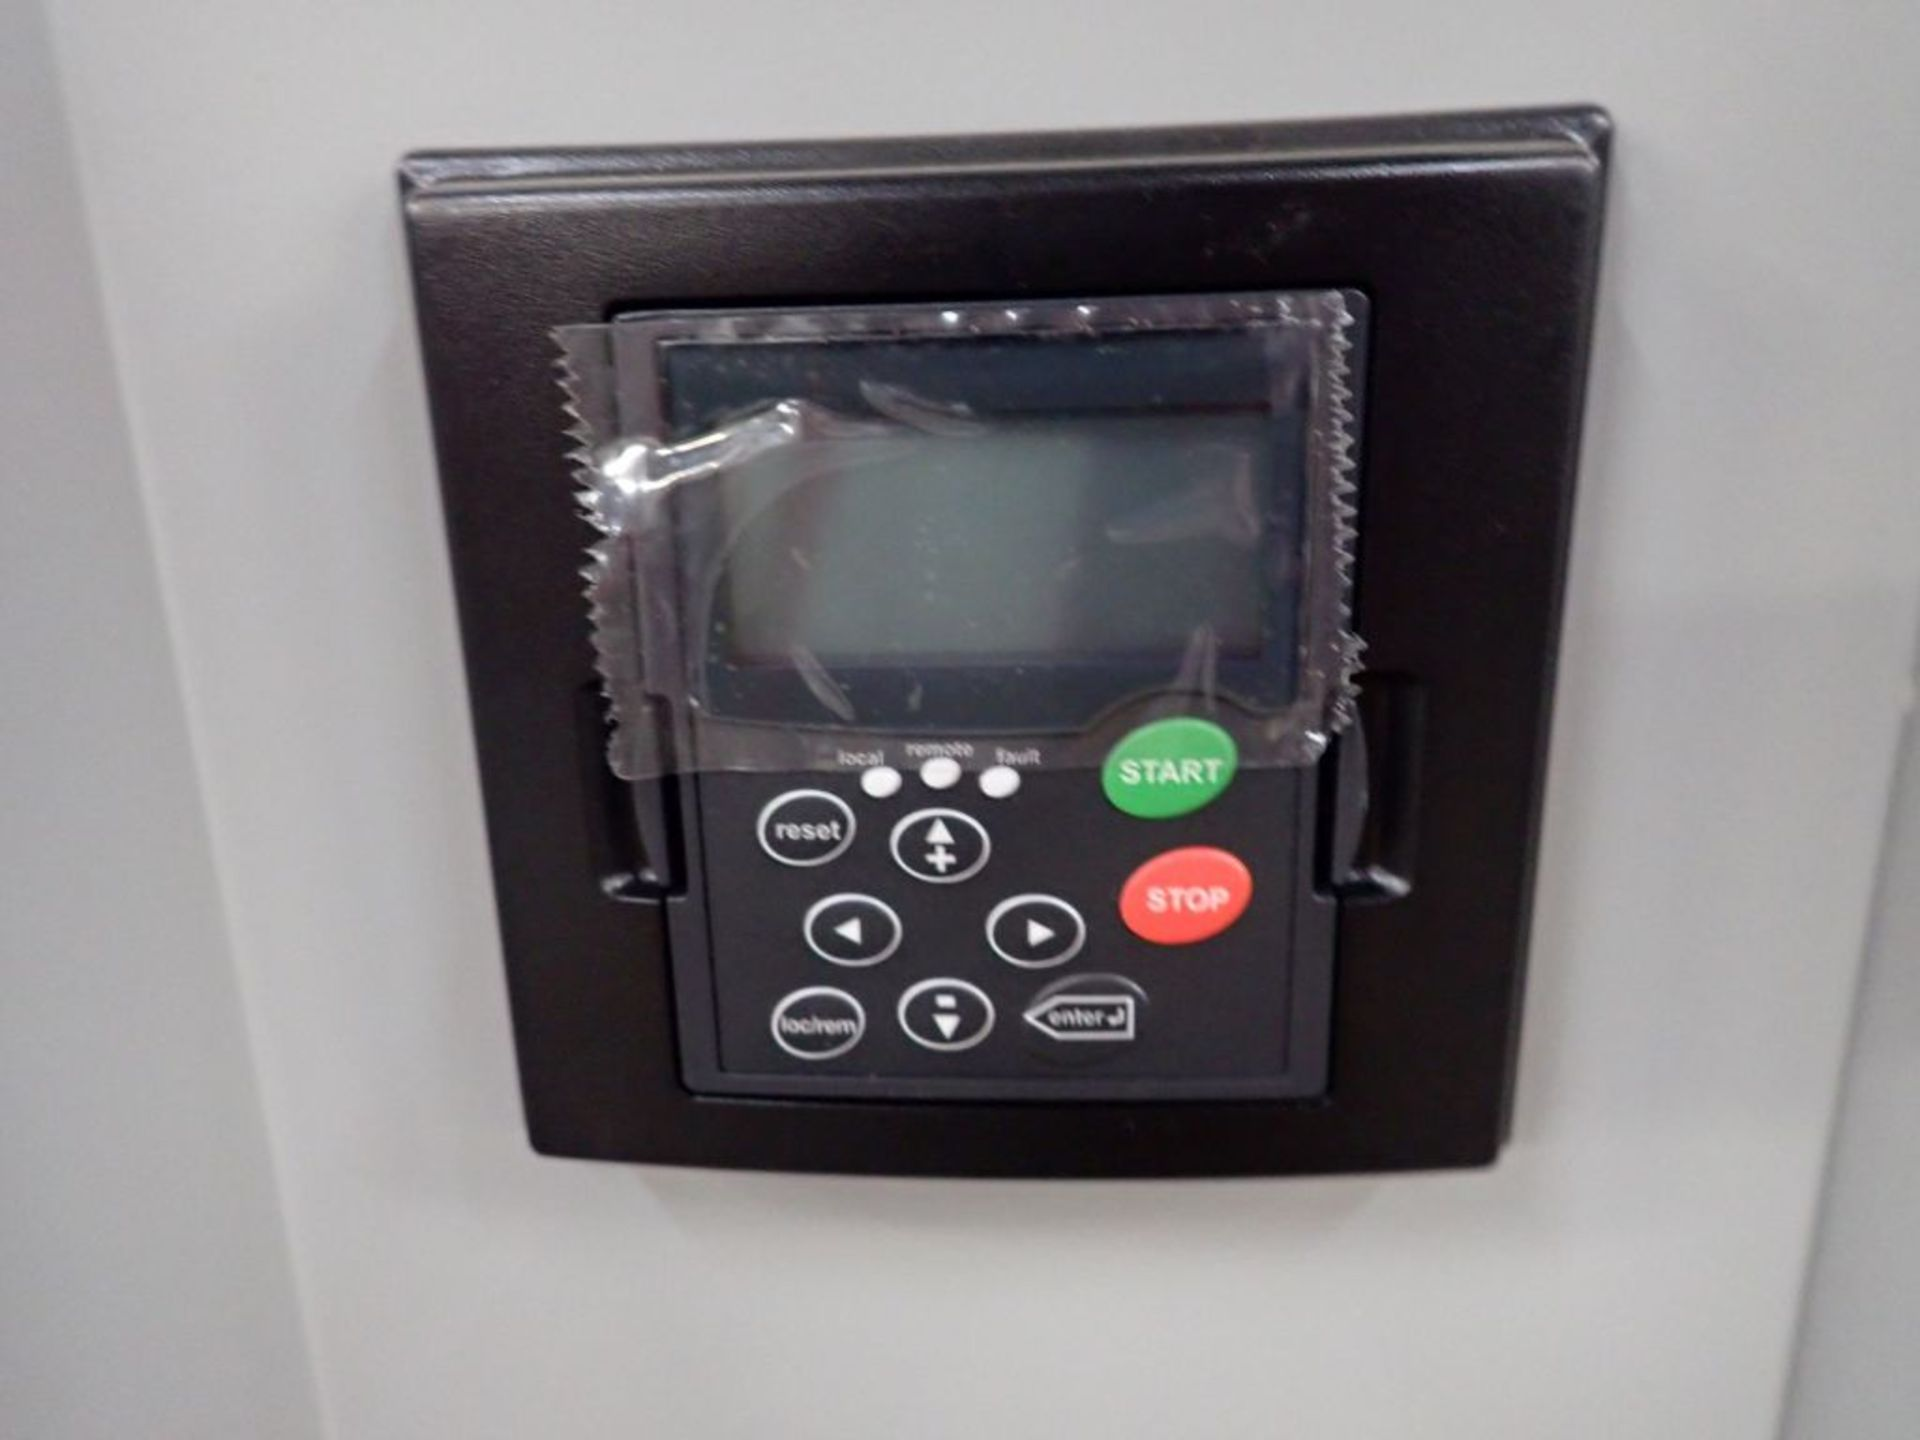 Eaton Freedom 2100 Series Motor Control Center   (2) F206-15A-10HP; (2) SVX900-50A, with Eaton AF - Image 7 of 48